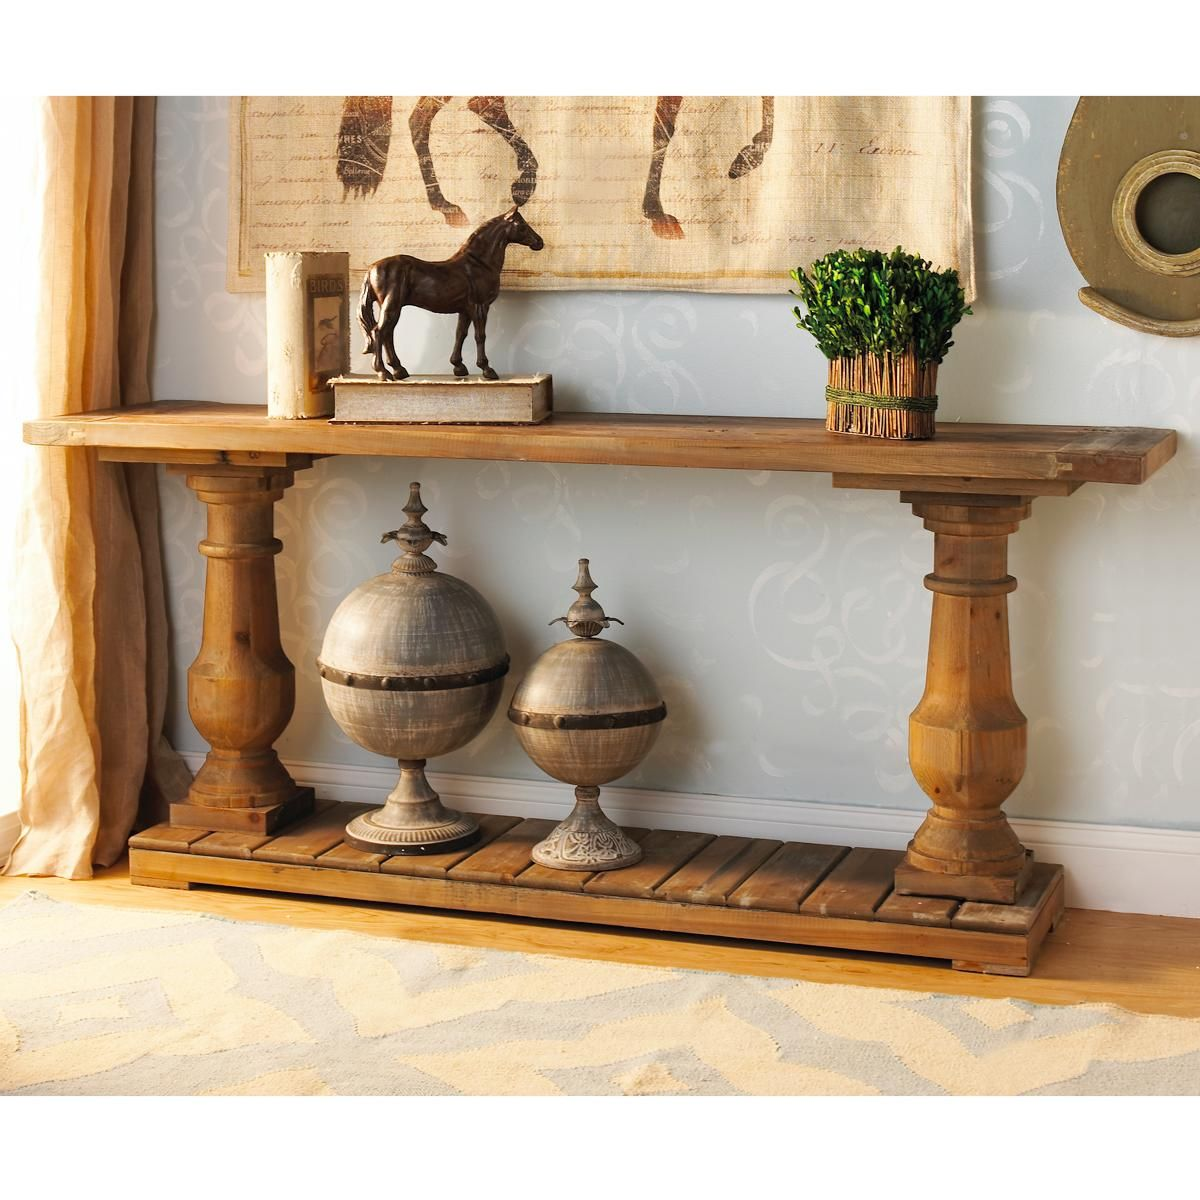 Wood turned baluster console table and check out those globes grey wash wood turned baluster console table geotapseo Choice Image